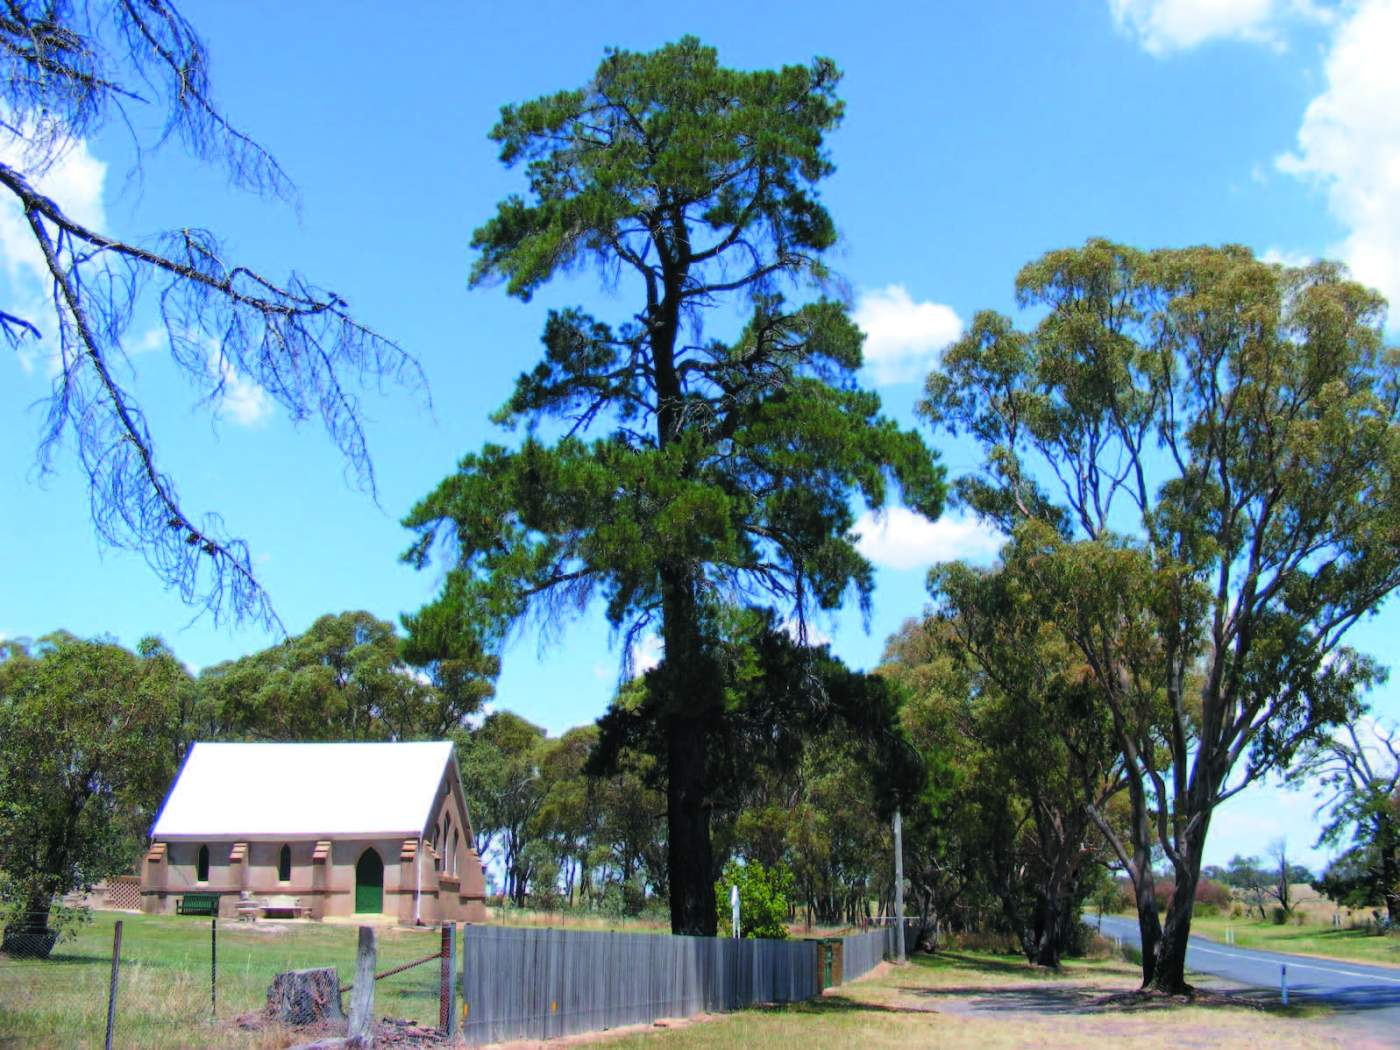 Pinus radiata (left) and a Eucalyptus viminalis (right)